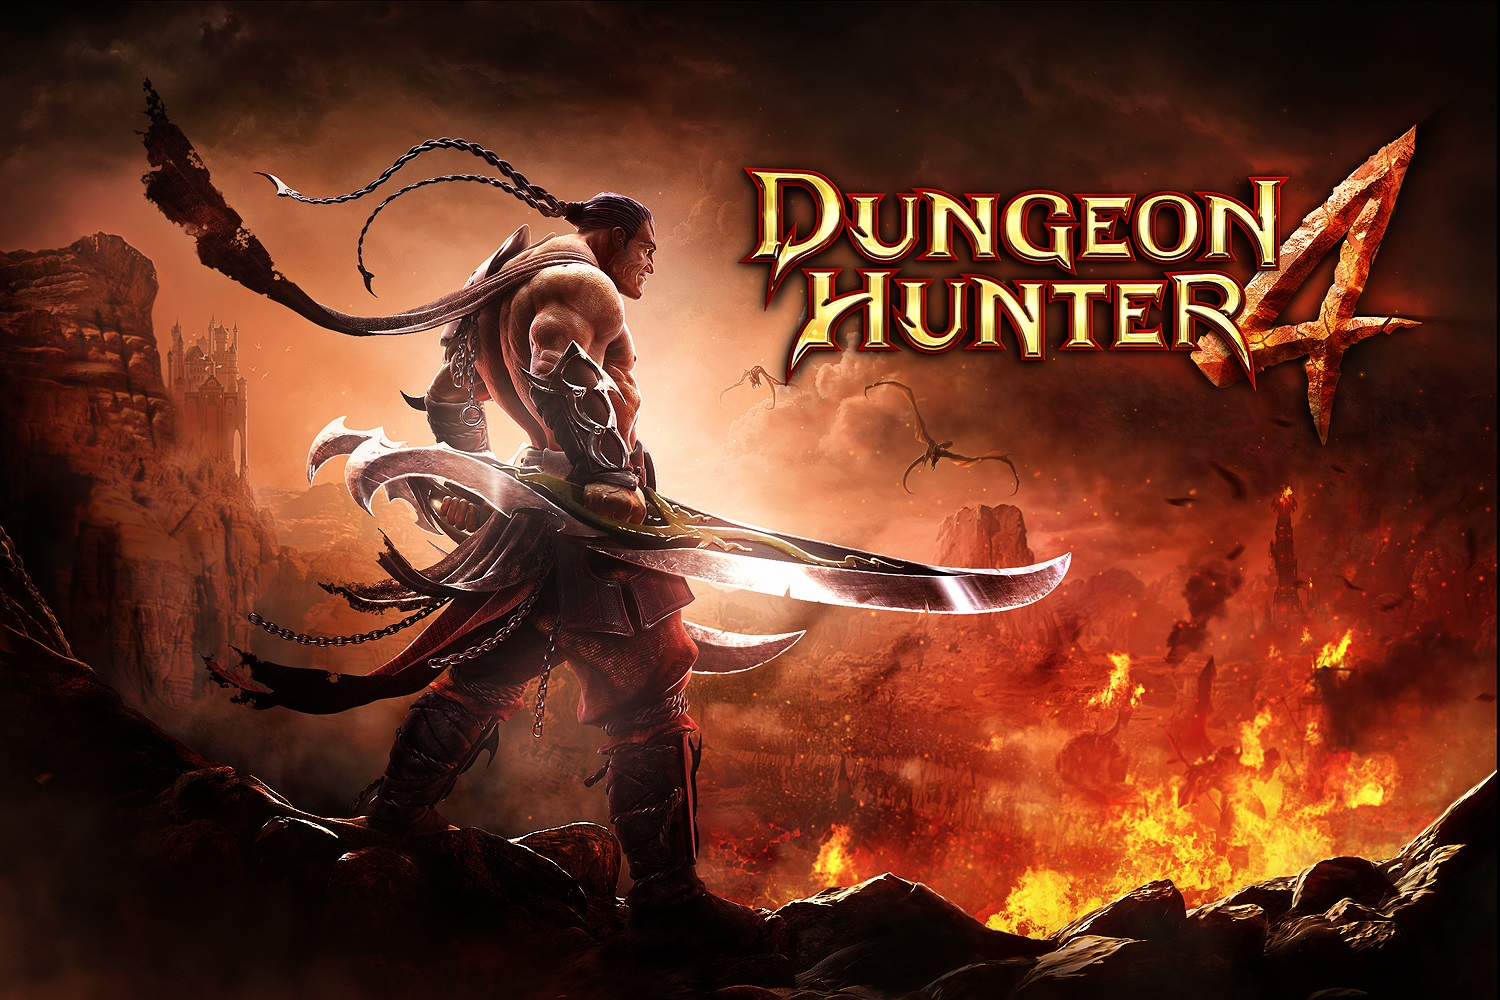 download dungeon hunter mod apk